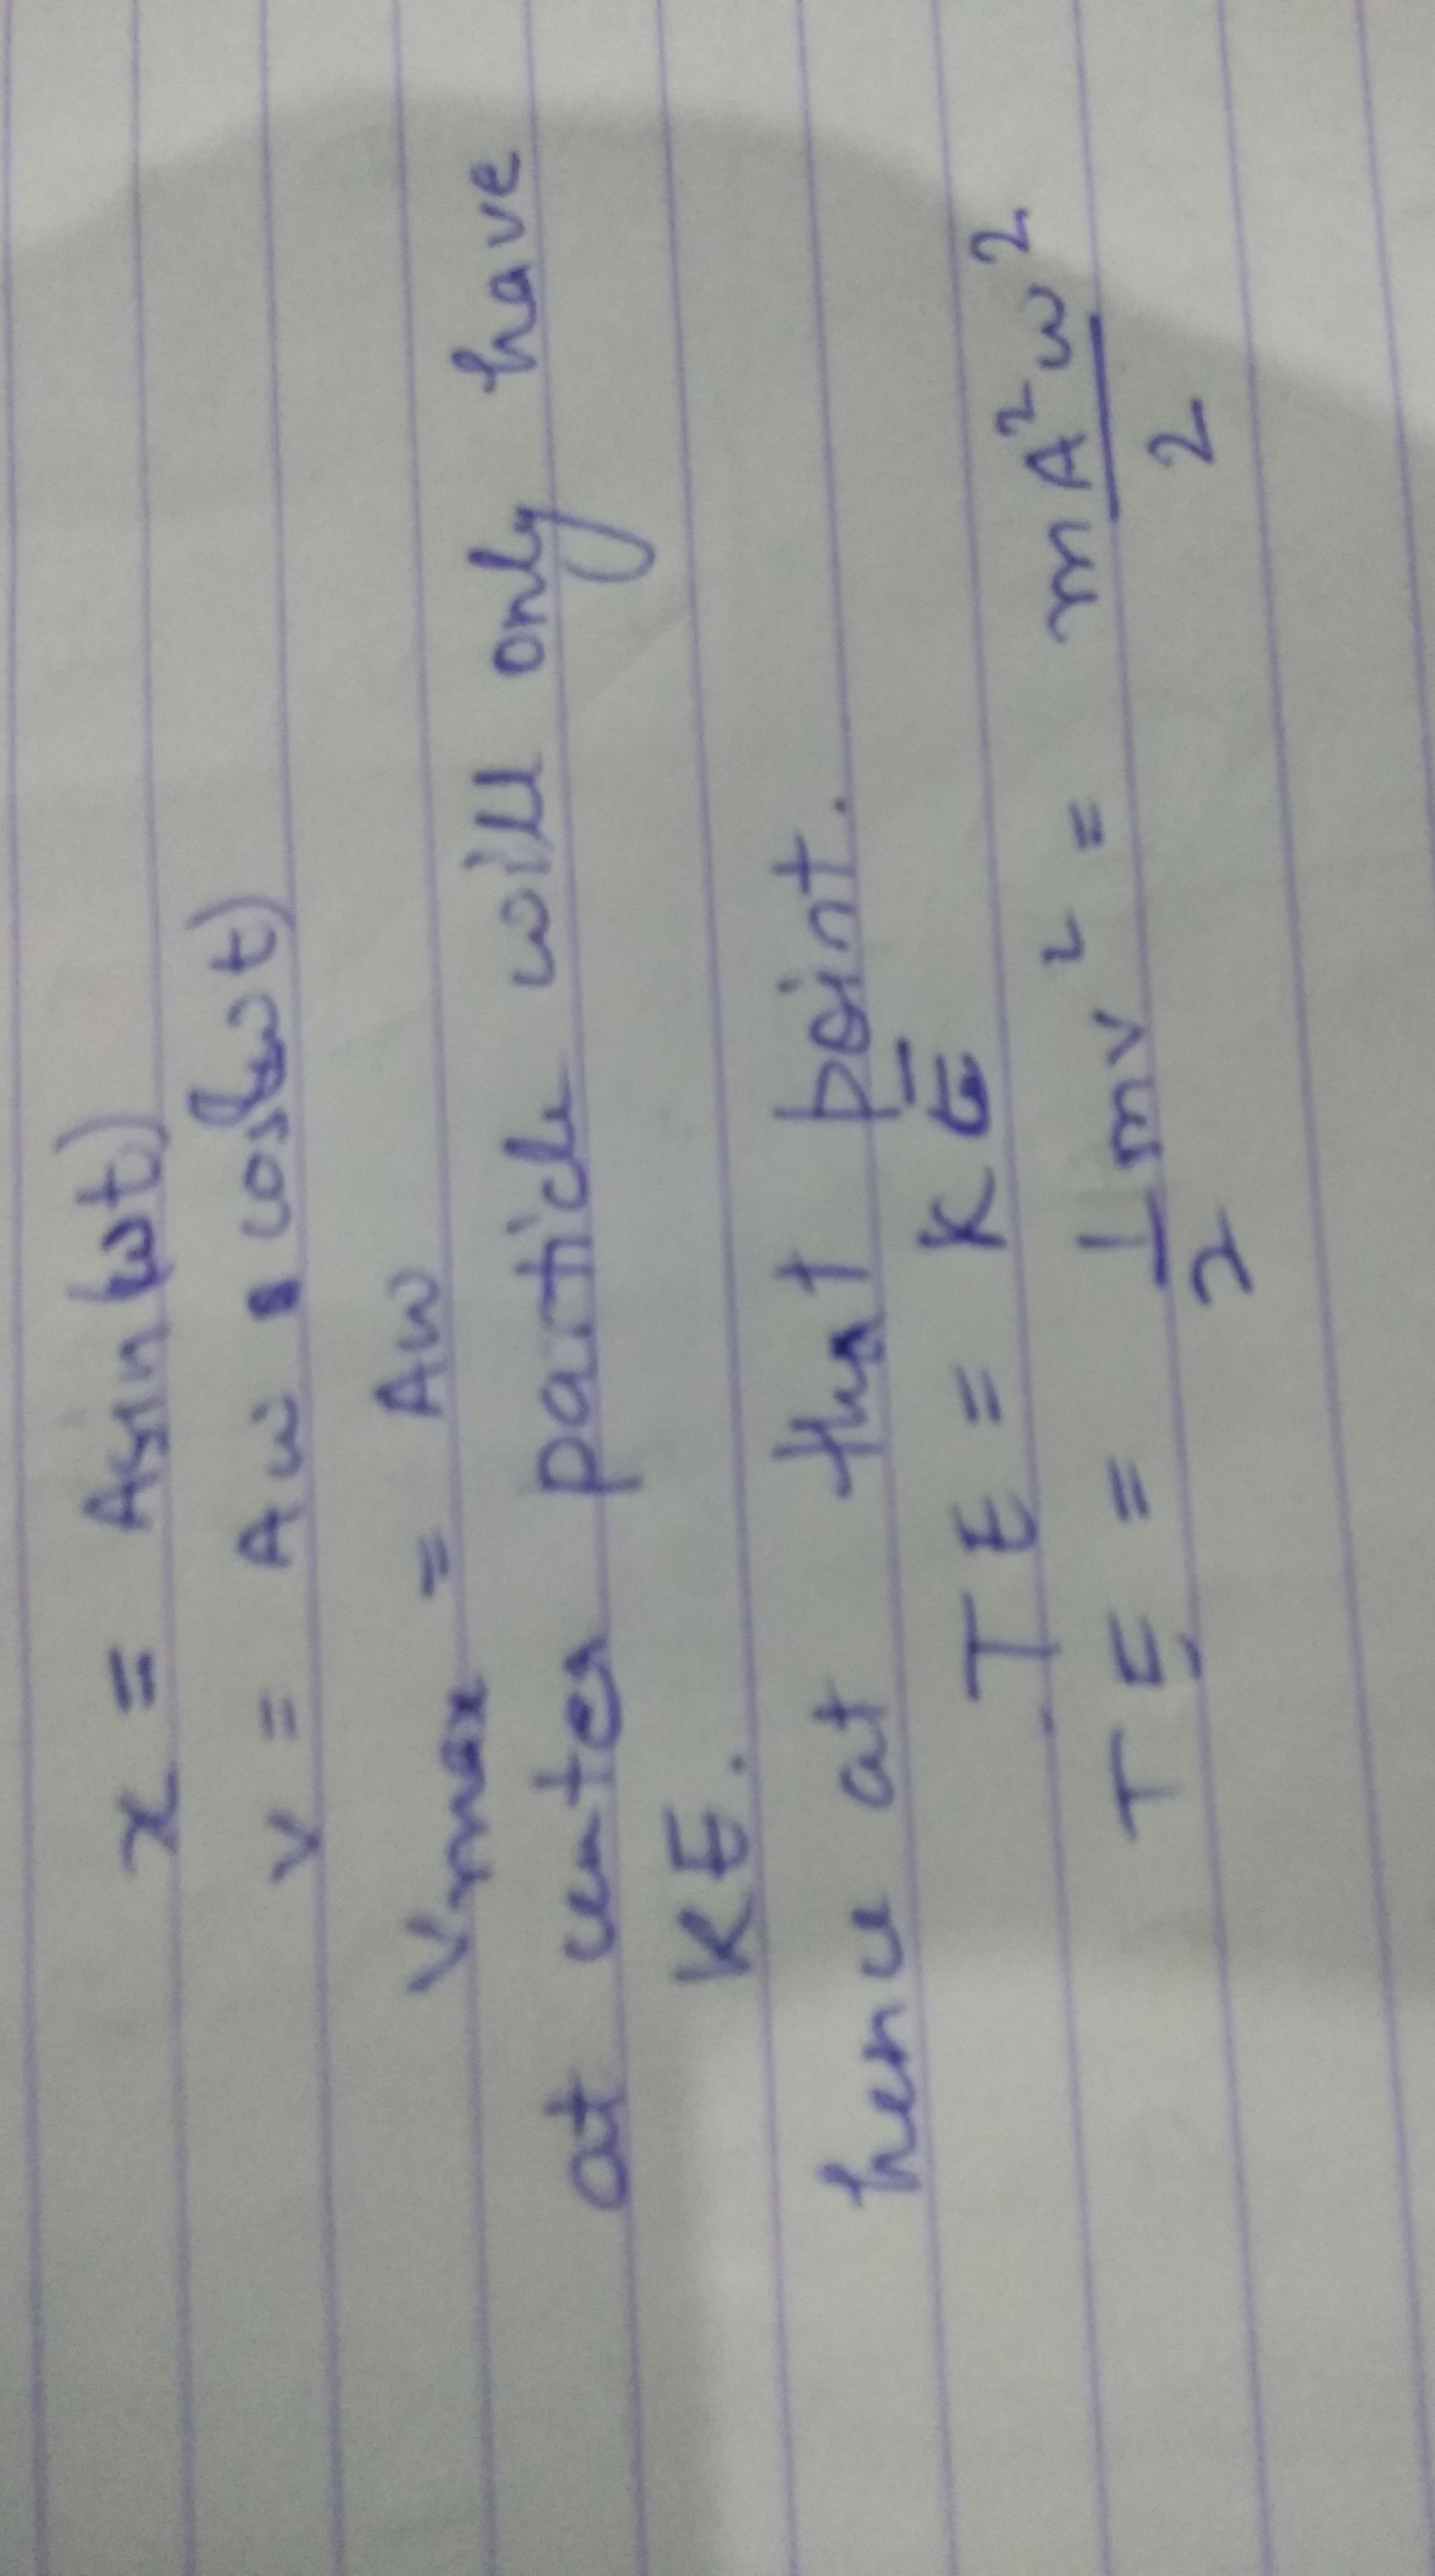 Derive an expression for the total energy of a particle